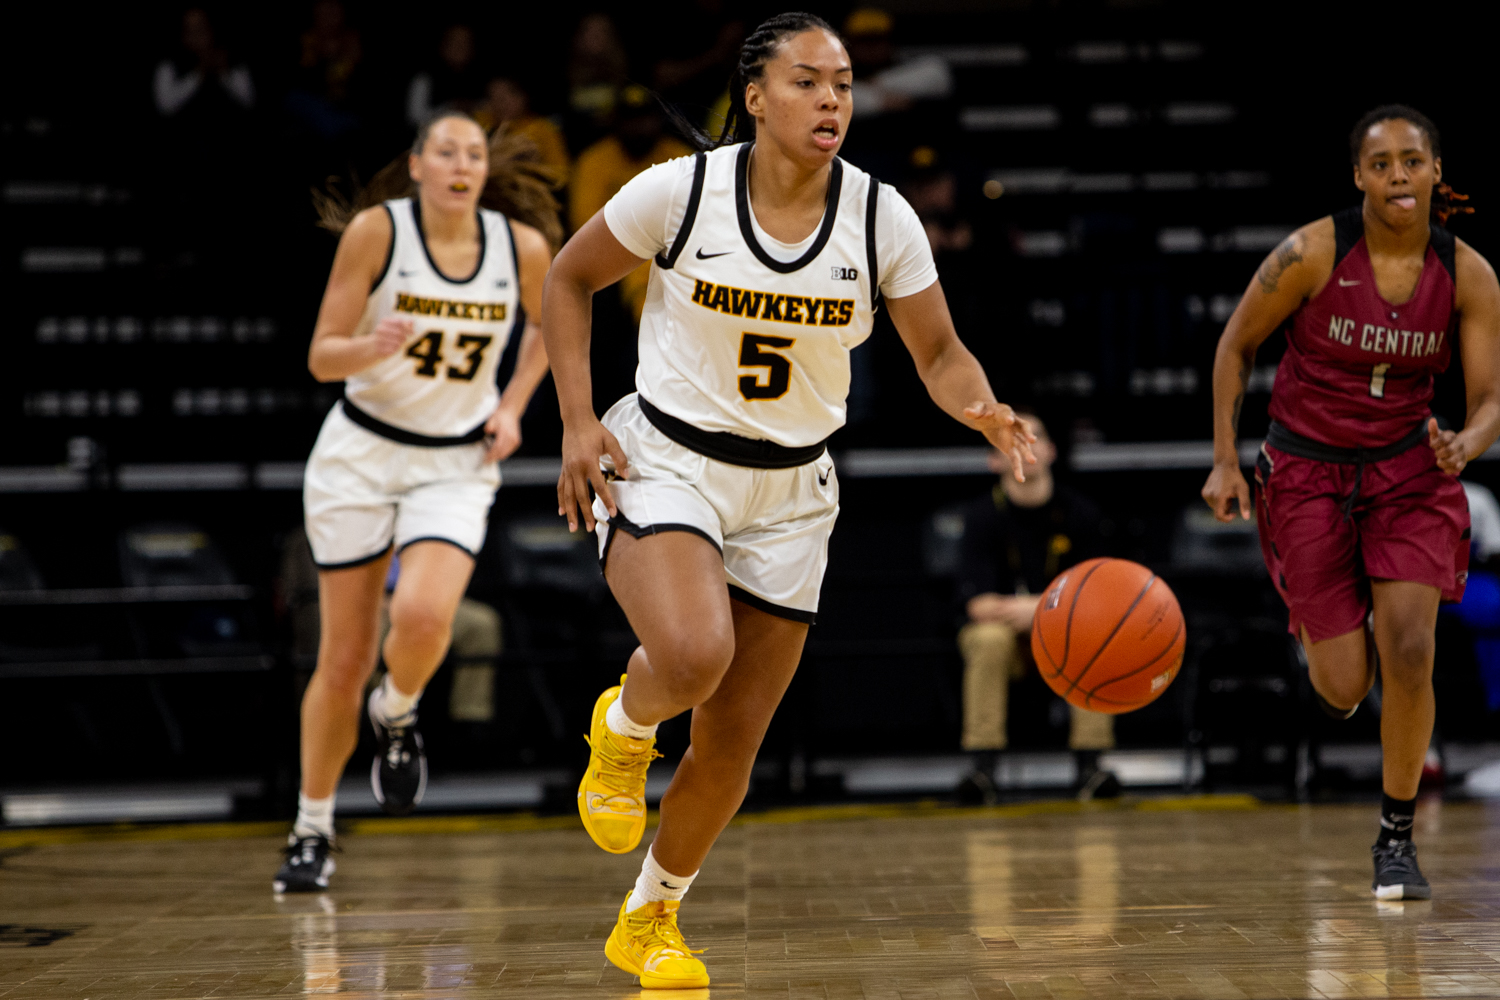 Iowa guard Alexis Sevillian drives down the court during a game against North Carolina Central University on Saturday, Dec. 14, 2019 at Carver Hawkeye Arena. The Hawkeyes defeated the Eagles, 102-50.